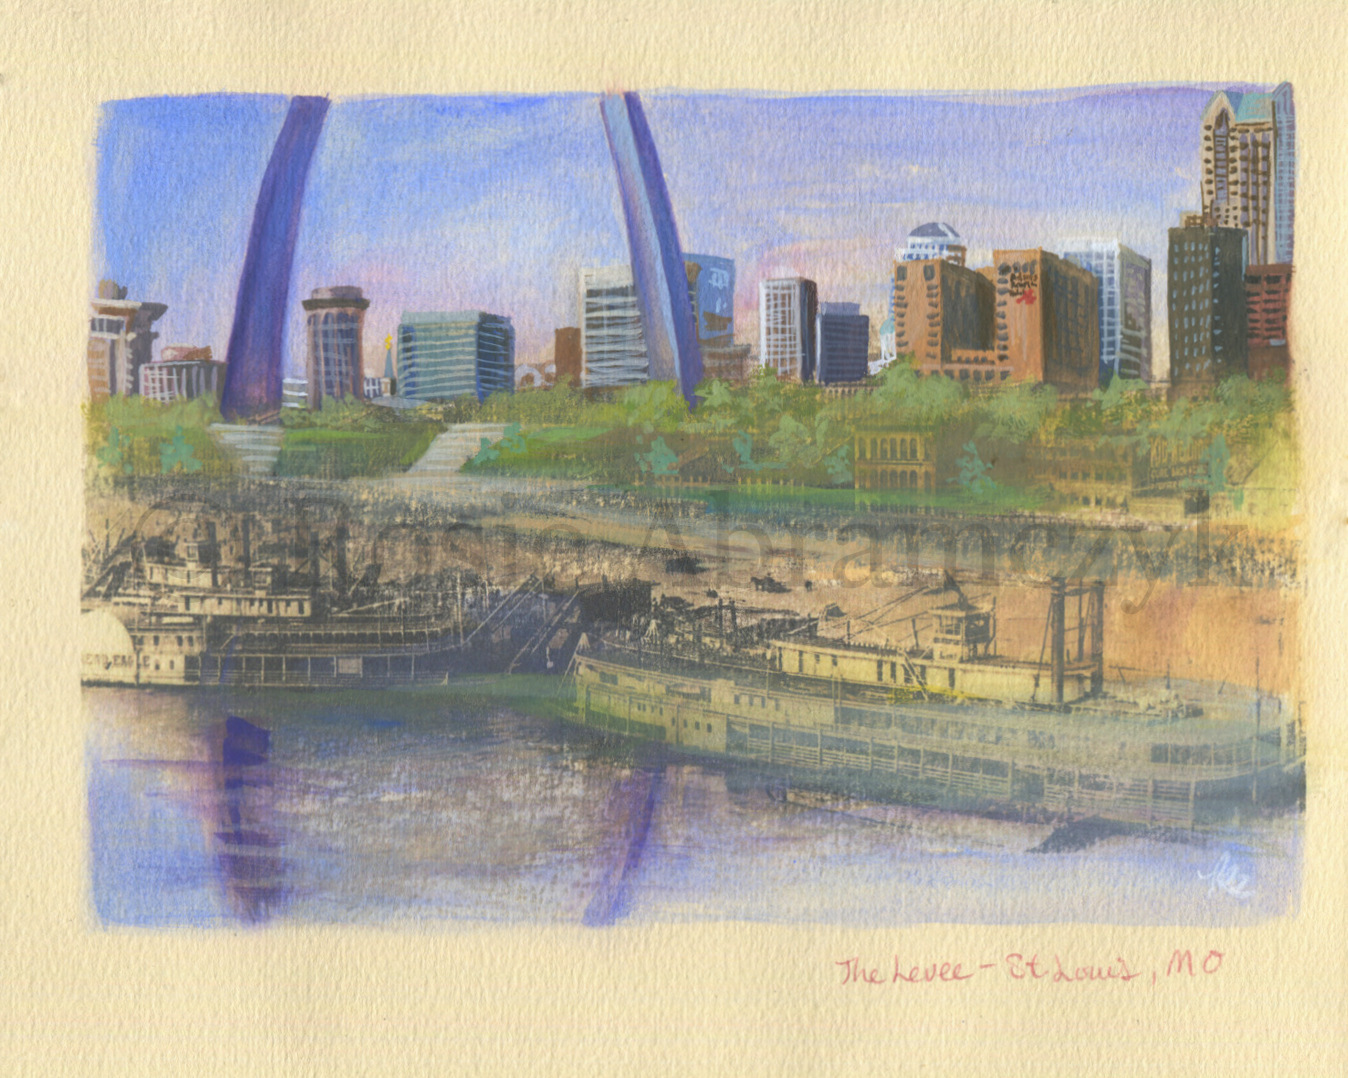 The Levee, St. Louis, MO, by Rosie Abramczyk, Gouache and Xerox Transfer, 2008